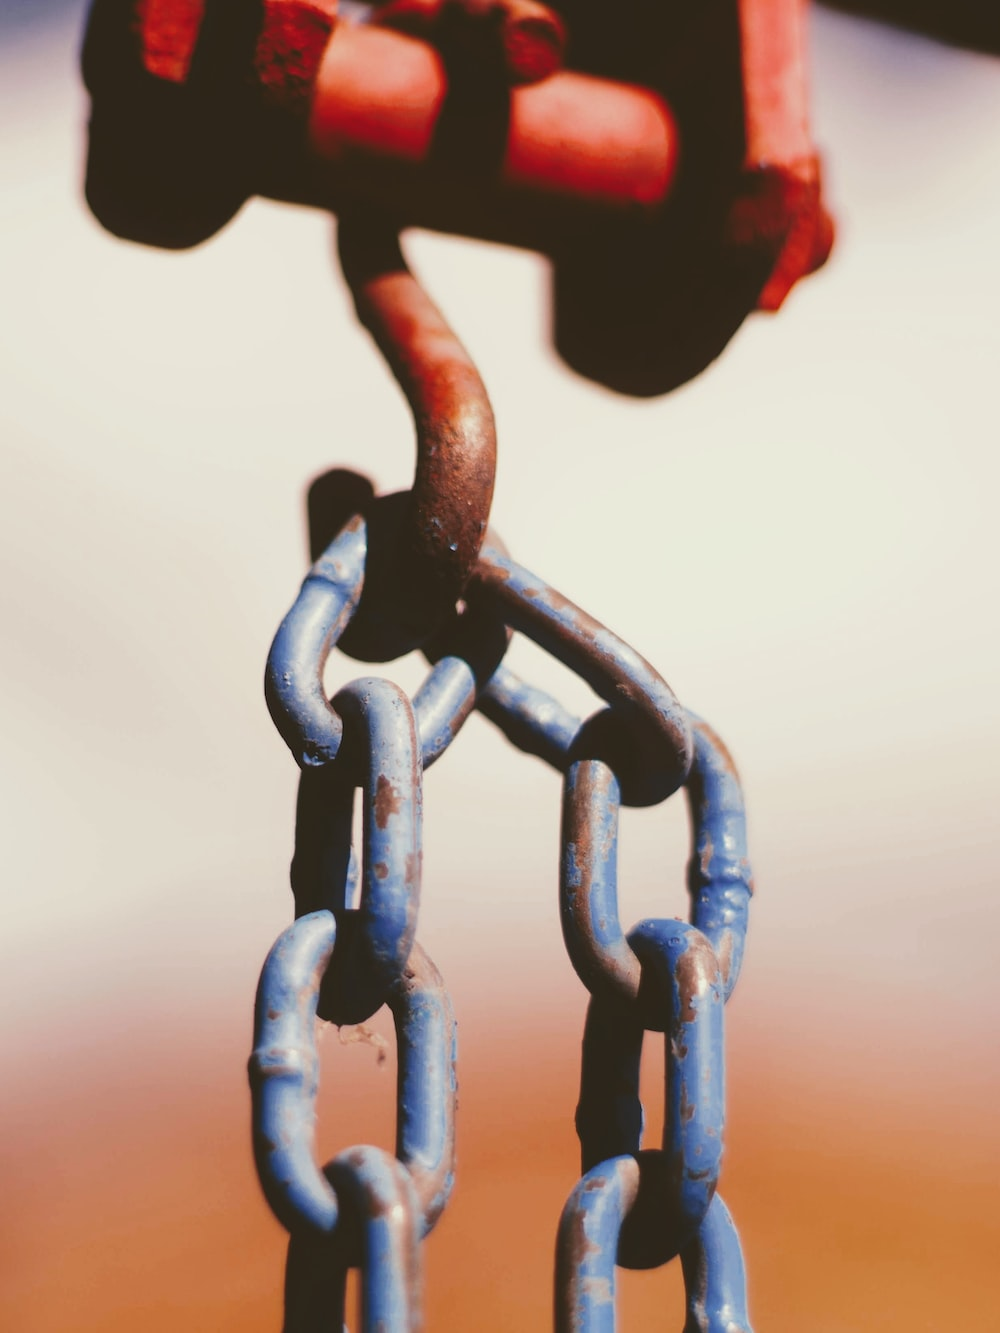 blue and orange metal chain link